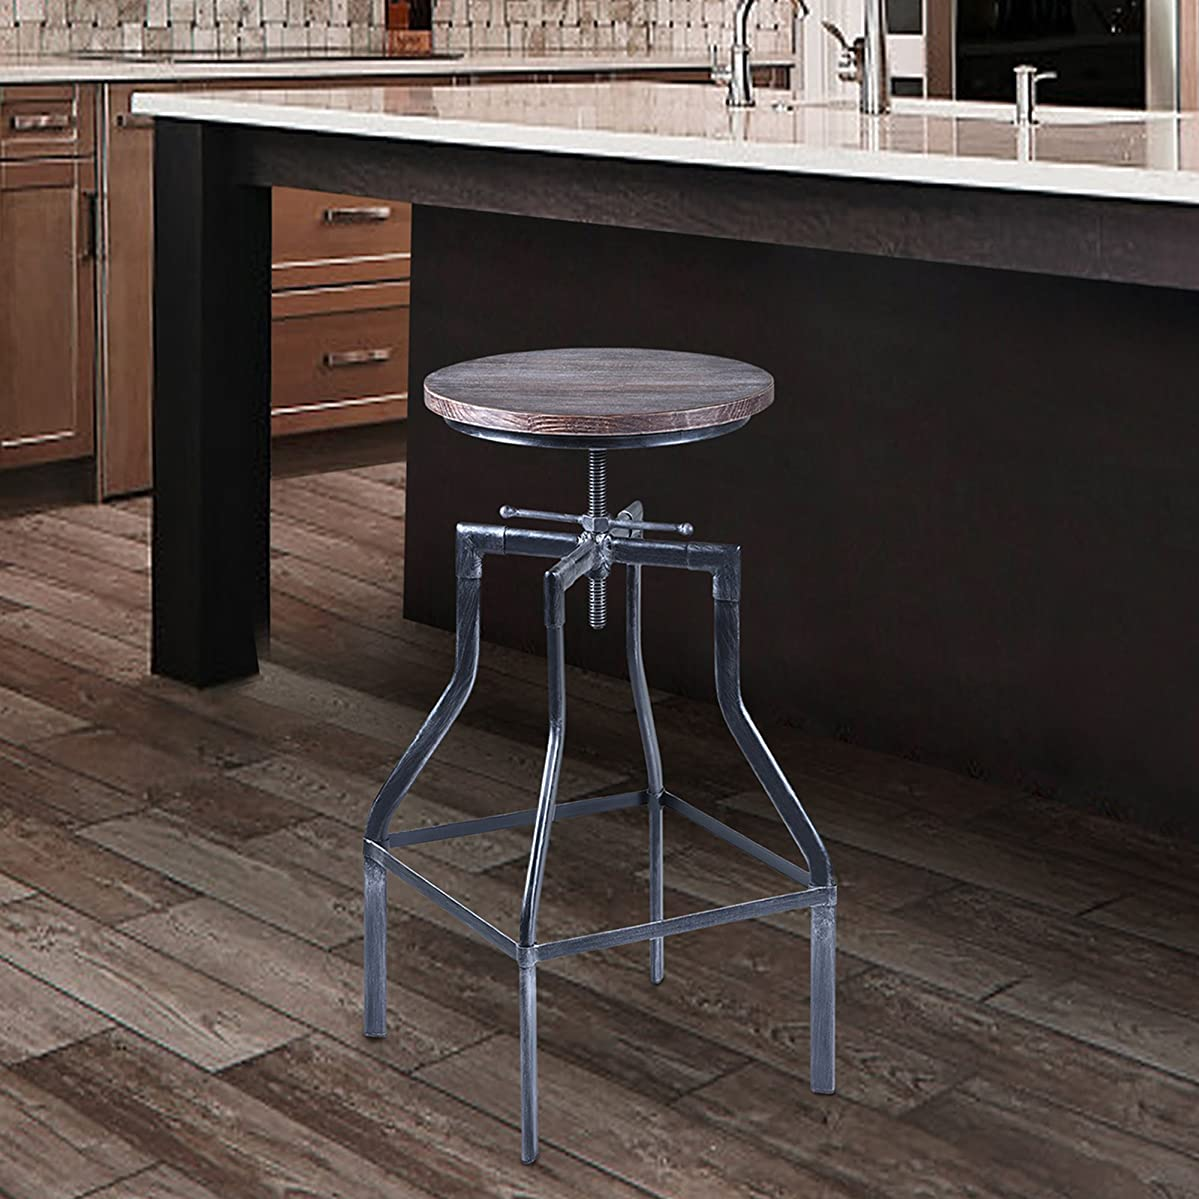 Armen Living LCCOSTSBPI Concord Adjustable Barstool in Pine Wood and Industrial Grey Metal Finish